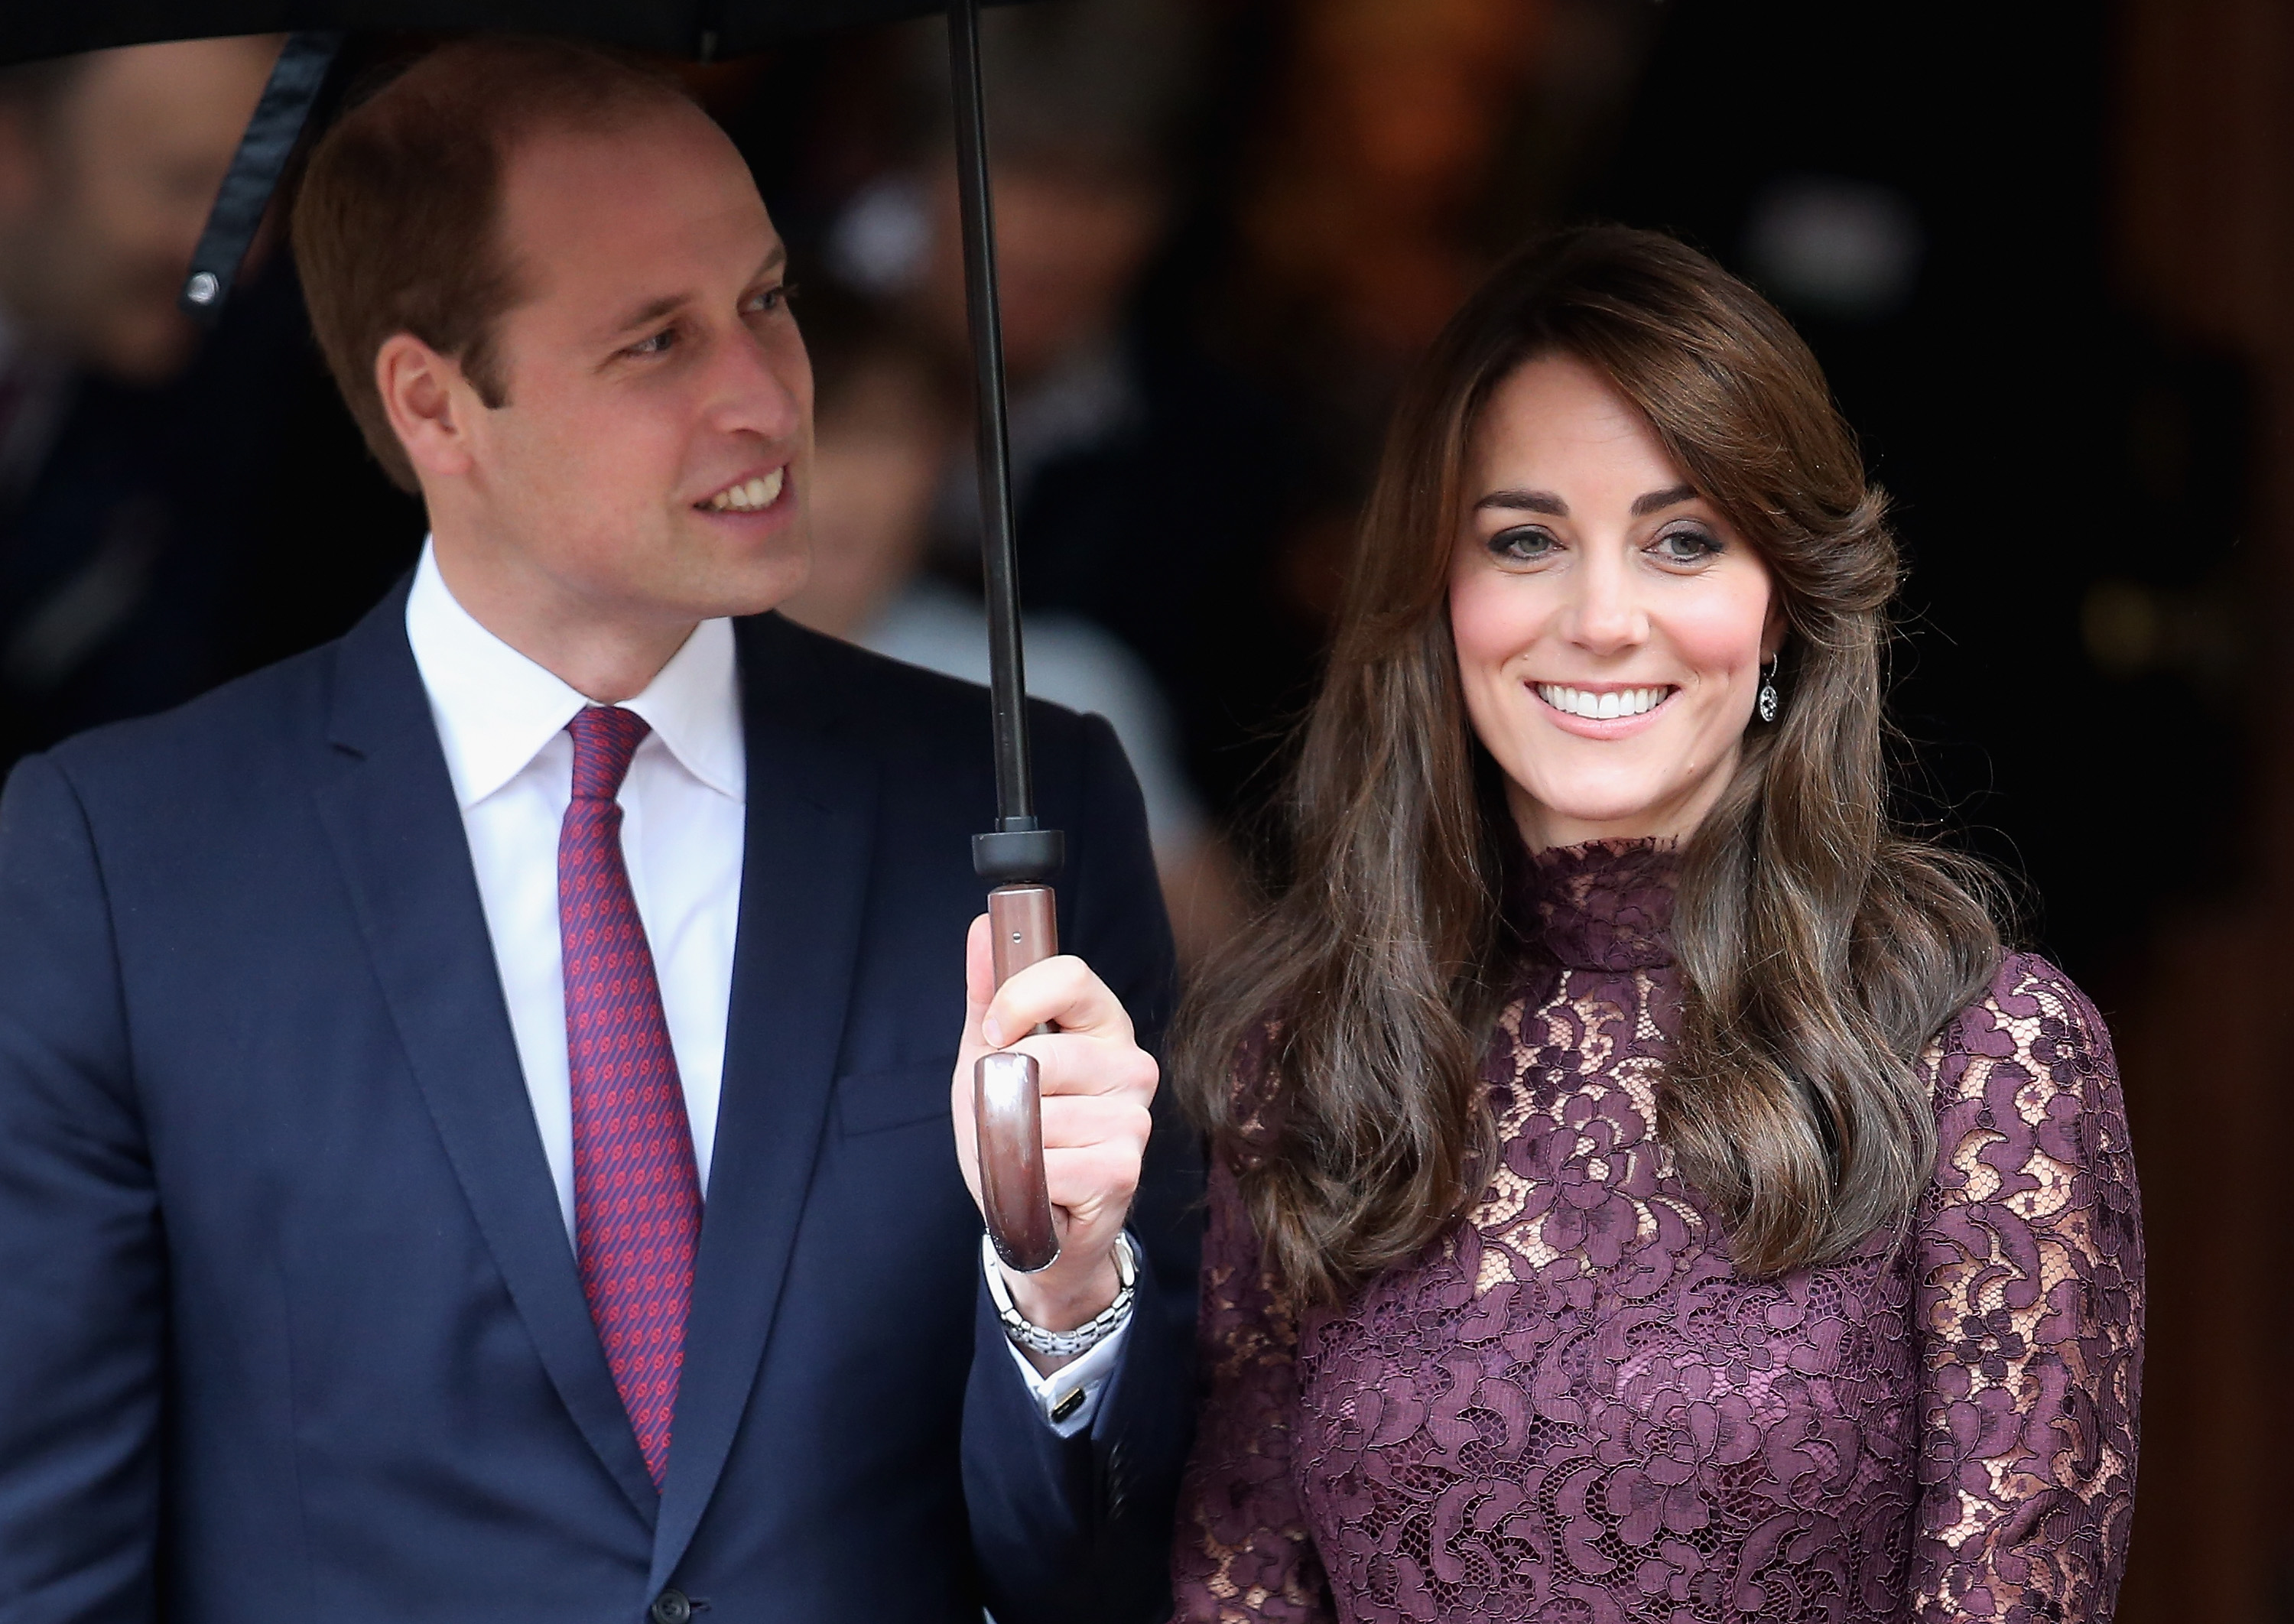 Kate Middleton Prince William Visit Their Old College Stomping Grounds It Makes For A Perfect Date